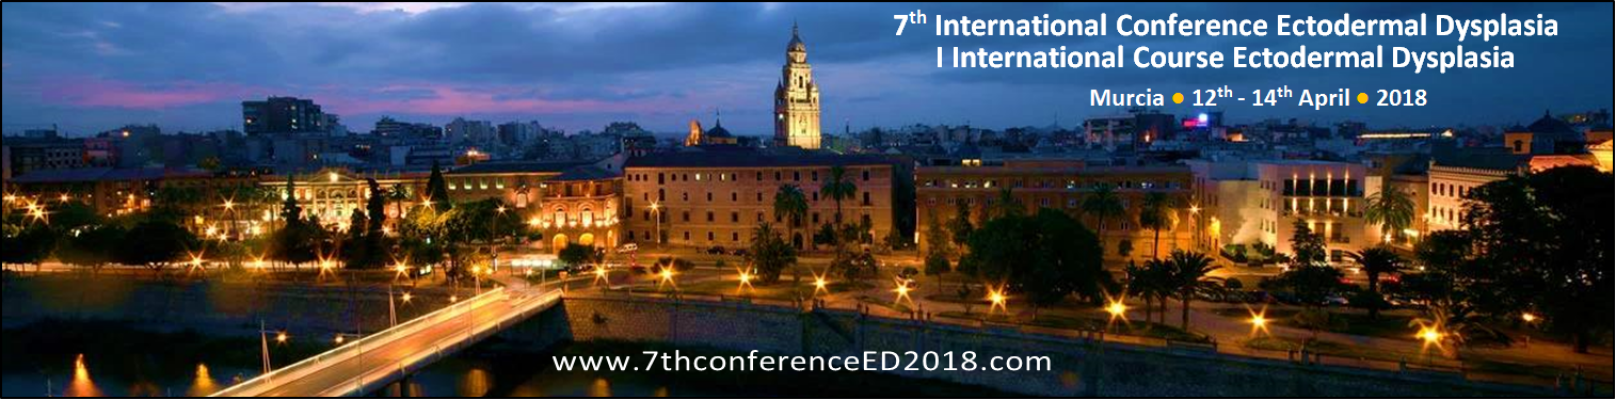 7th International Conference Ectodermal Dysplasia